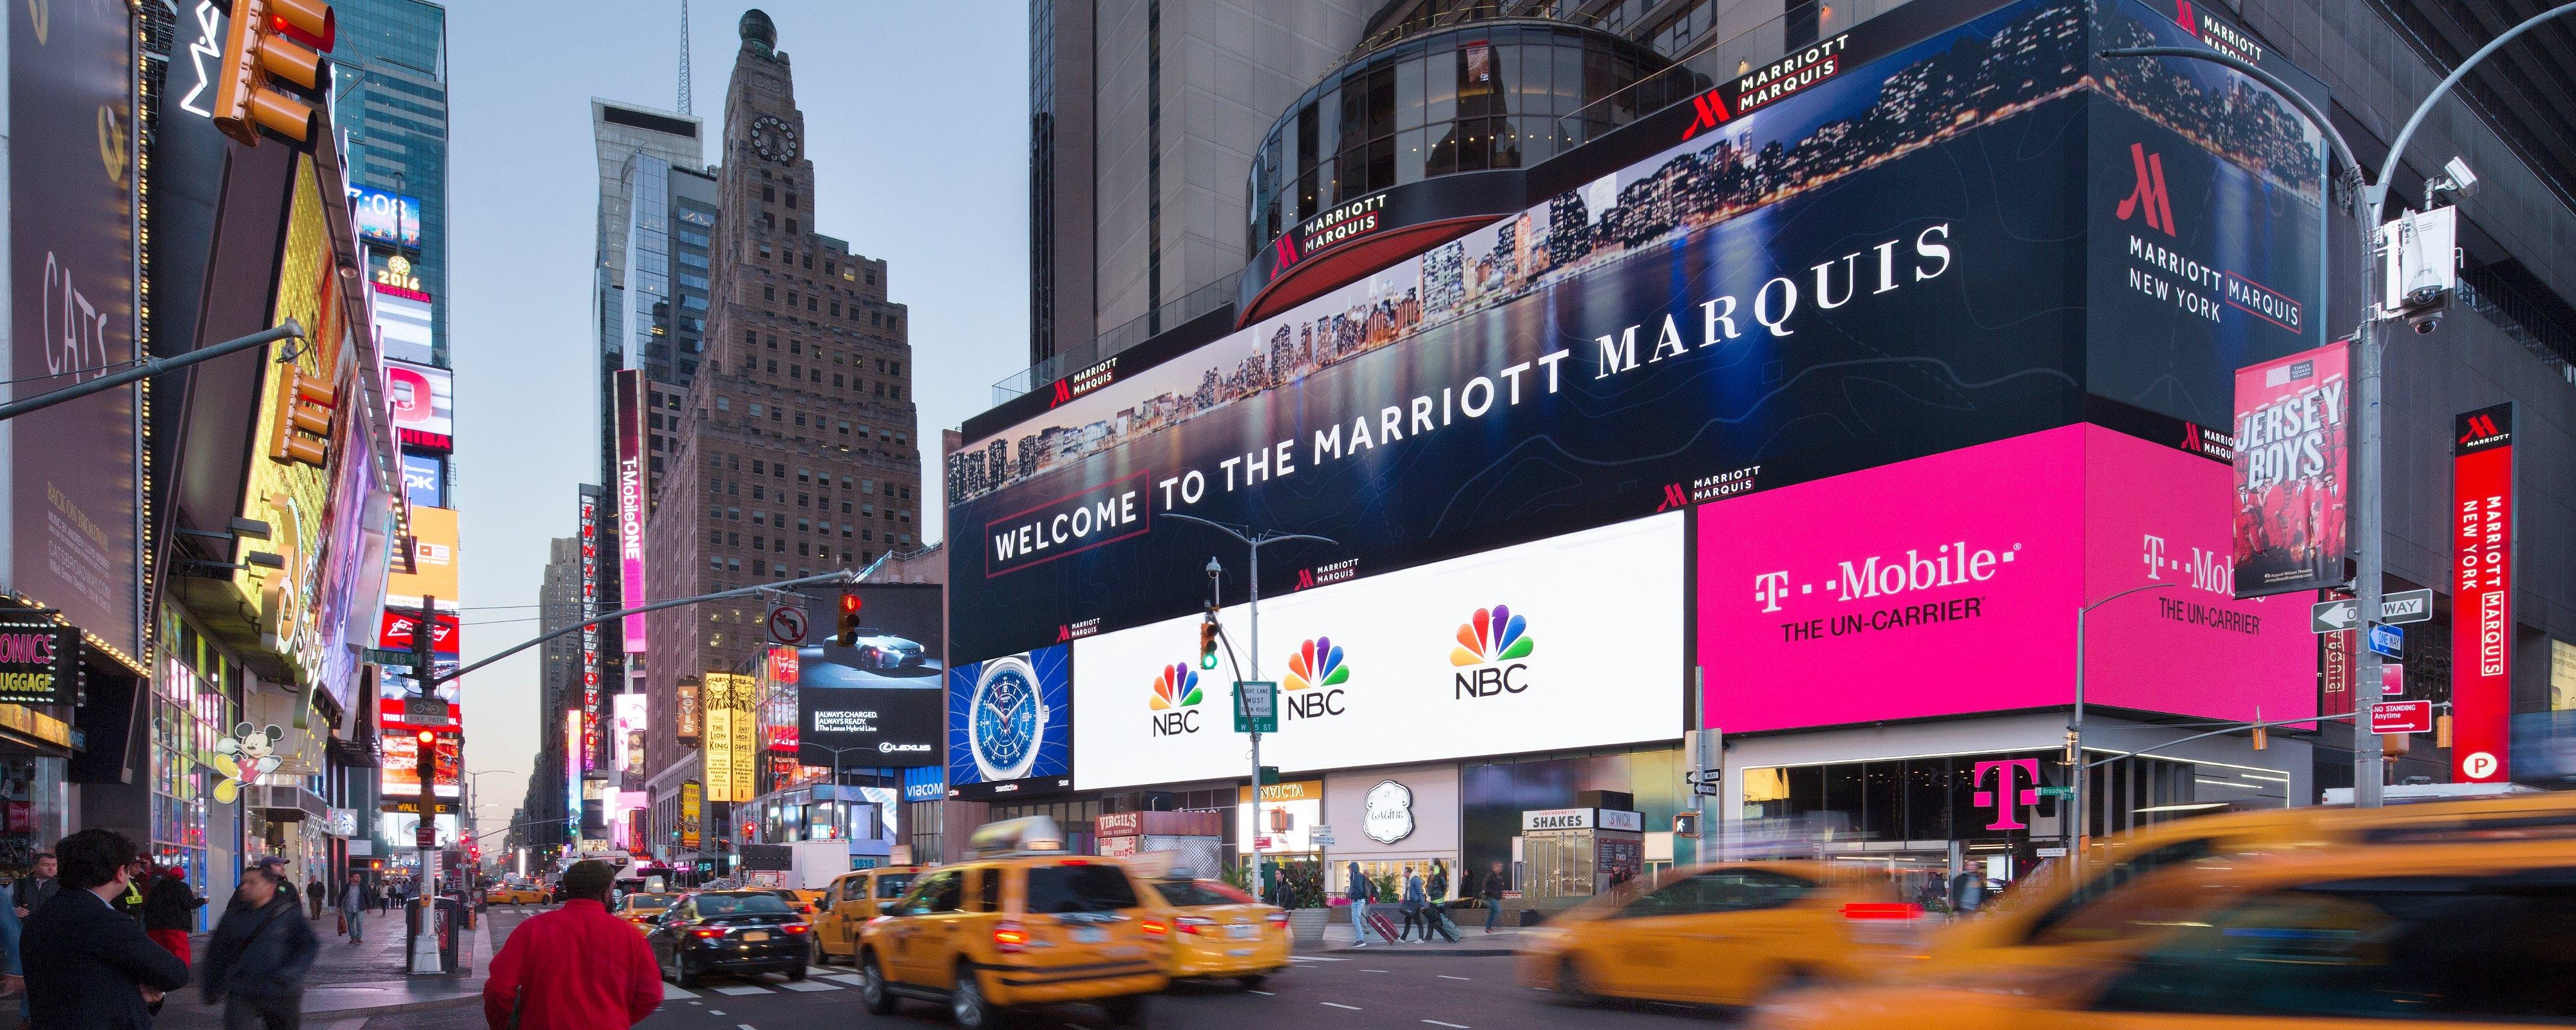 Nyc Hotel In Times Square Broadway New York Marriott